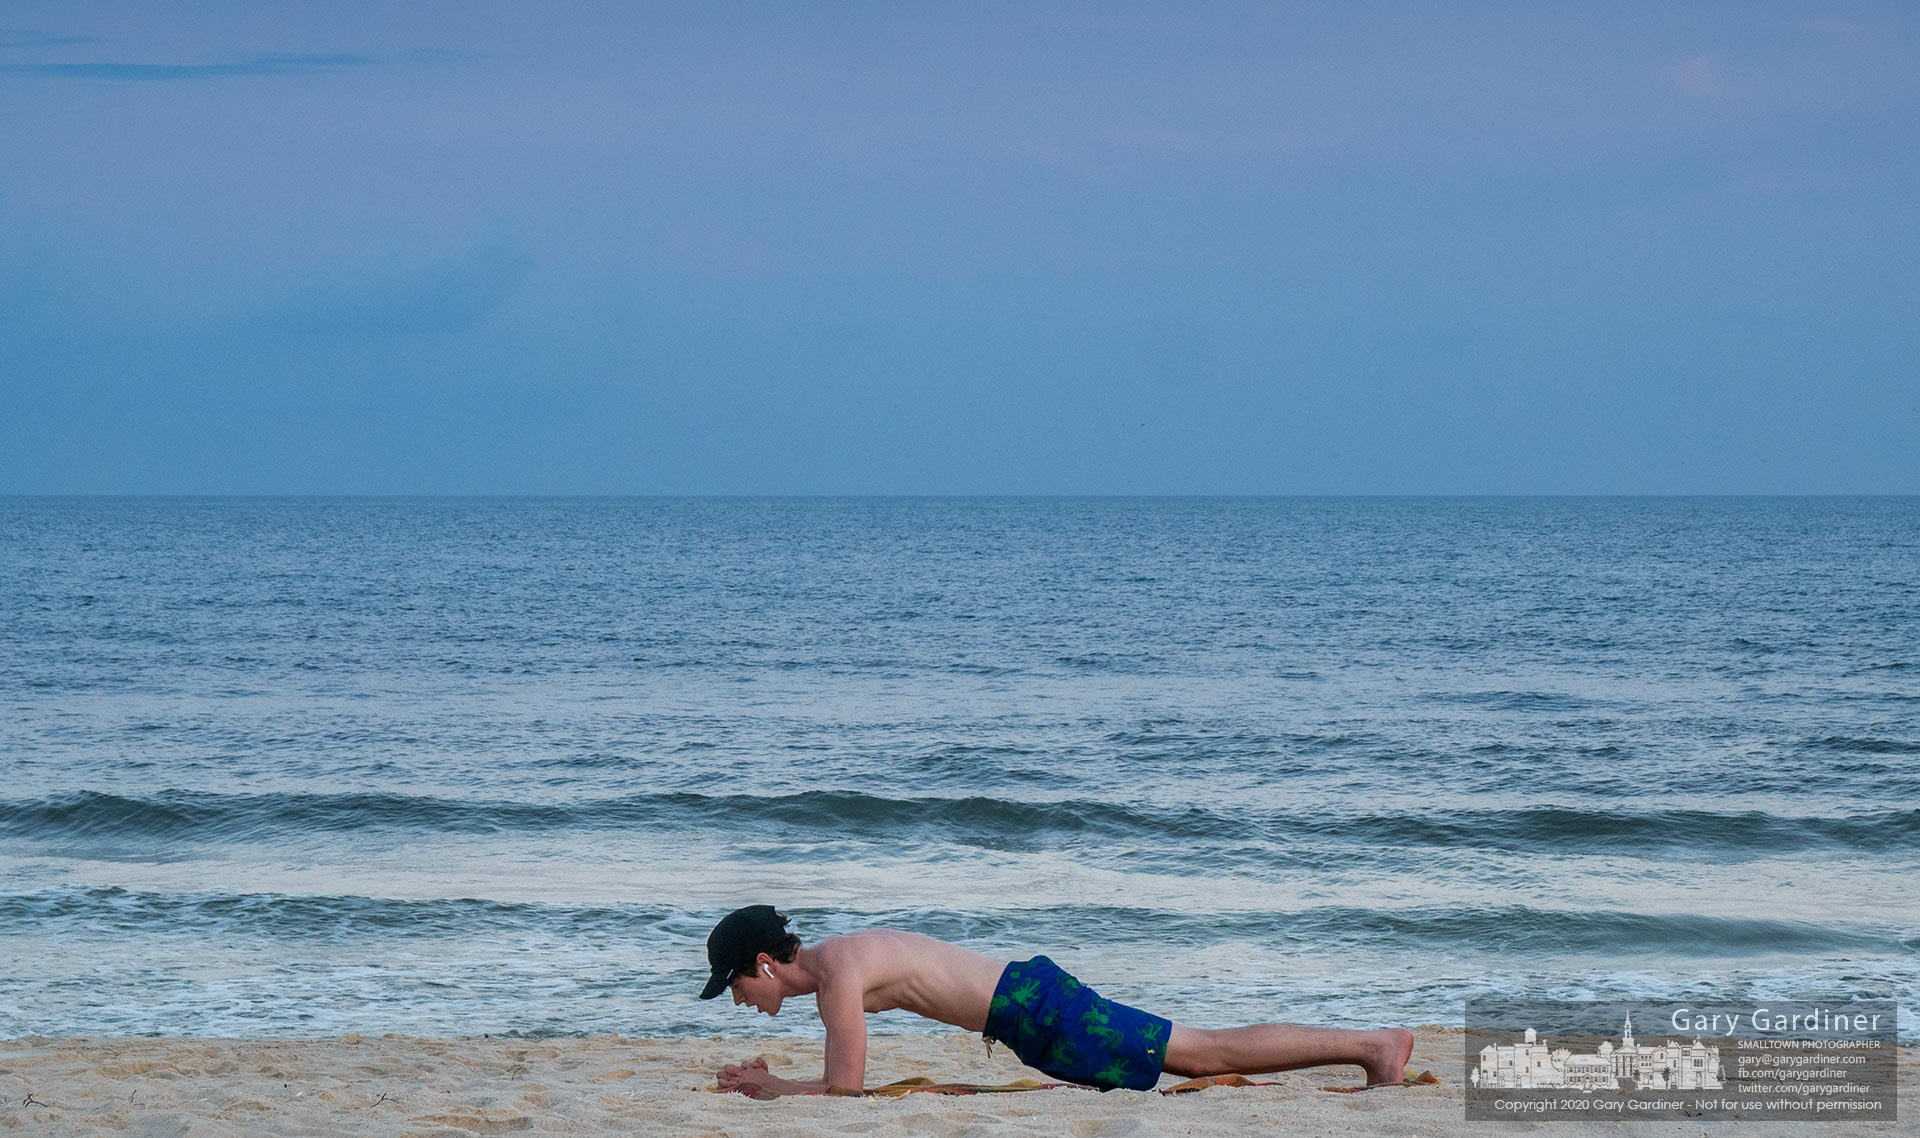 Seventeen-year-old Ryan Robbins performs his evening exercise routine on the beach sands at St. George Island in Florida. My Final Photo for July 13, 2020.